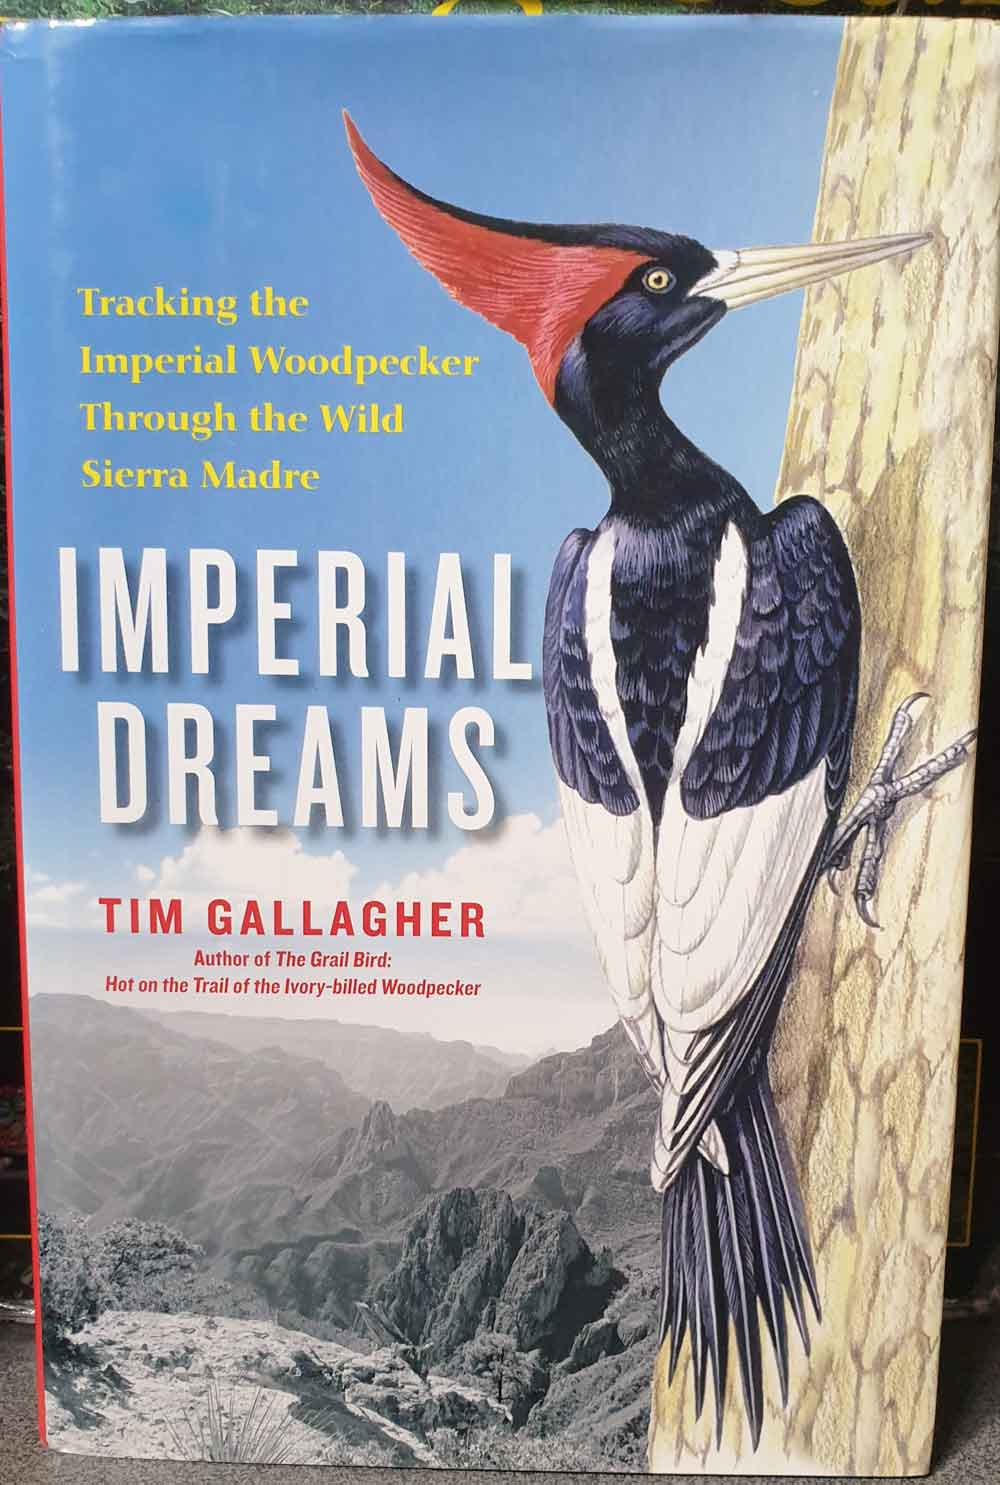 woodpecker-books-June-2019-Gallagher-1000px-tiny-June-2019-Darren-Naish-Tetrapod-Zoology.jpg